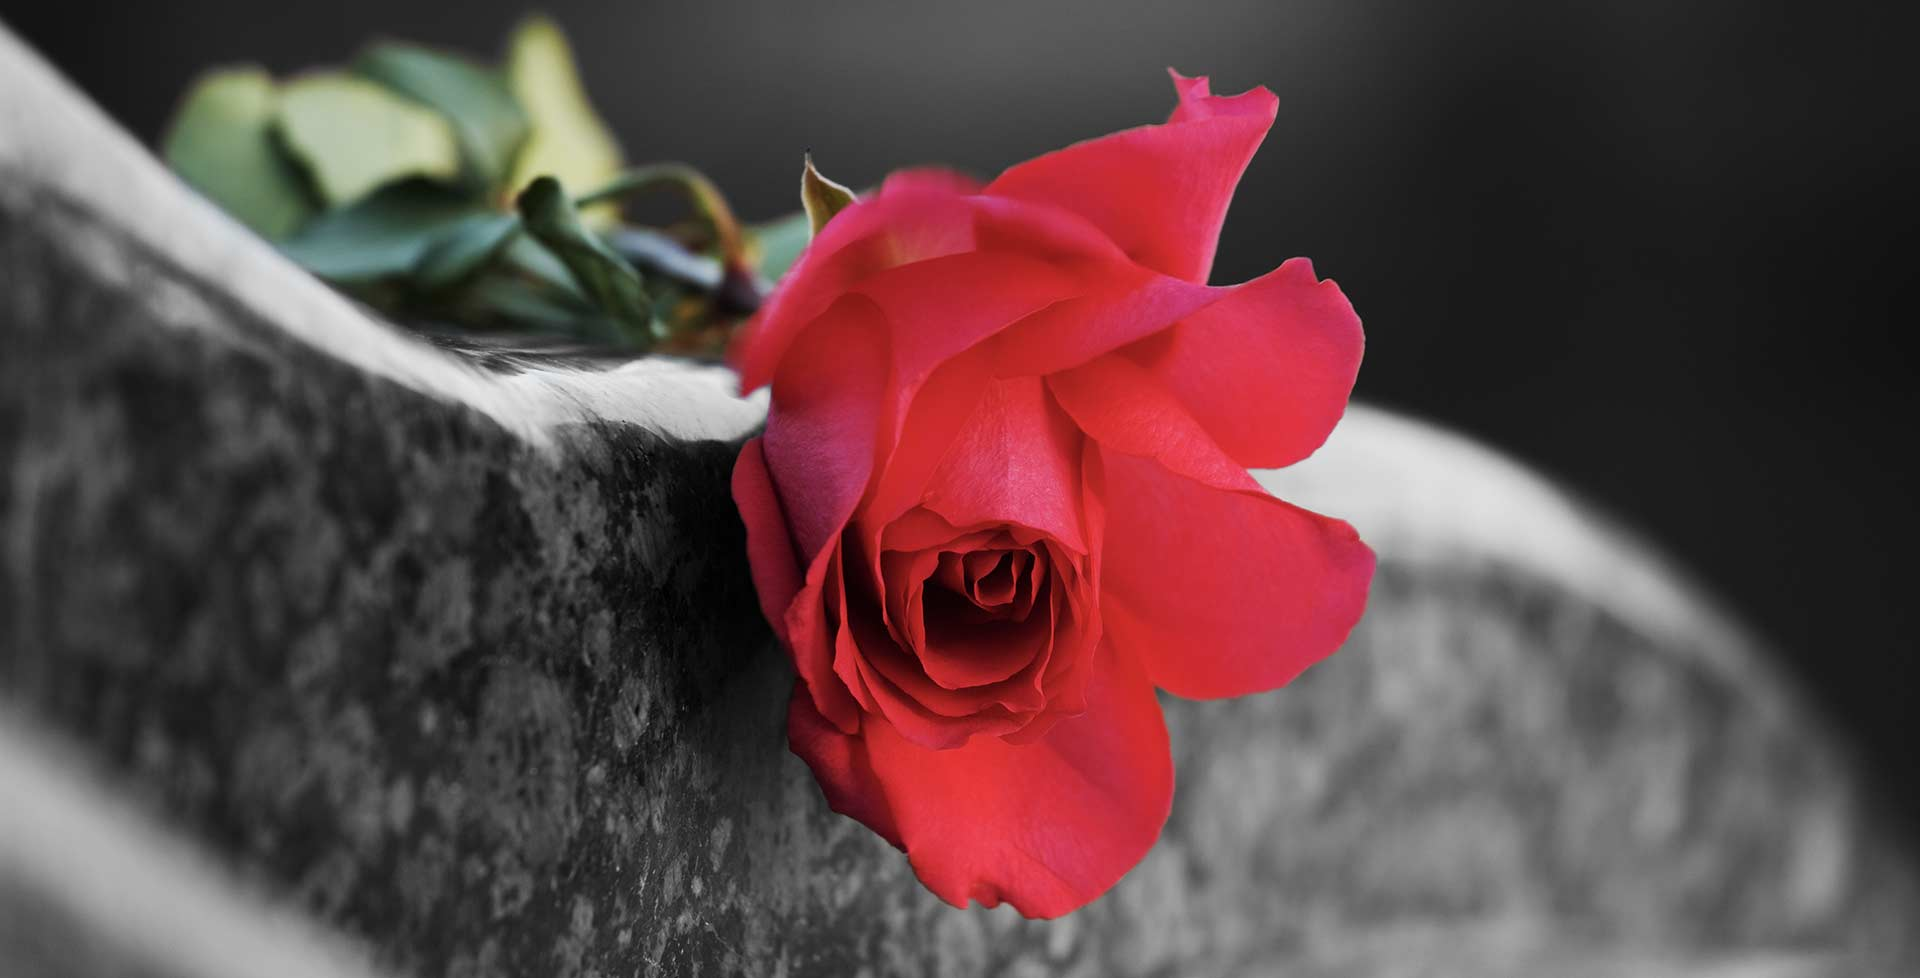 Rose on tombstone